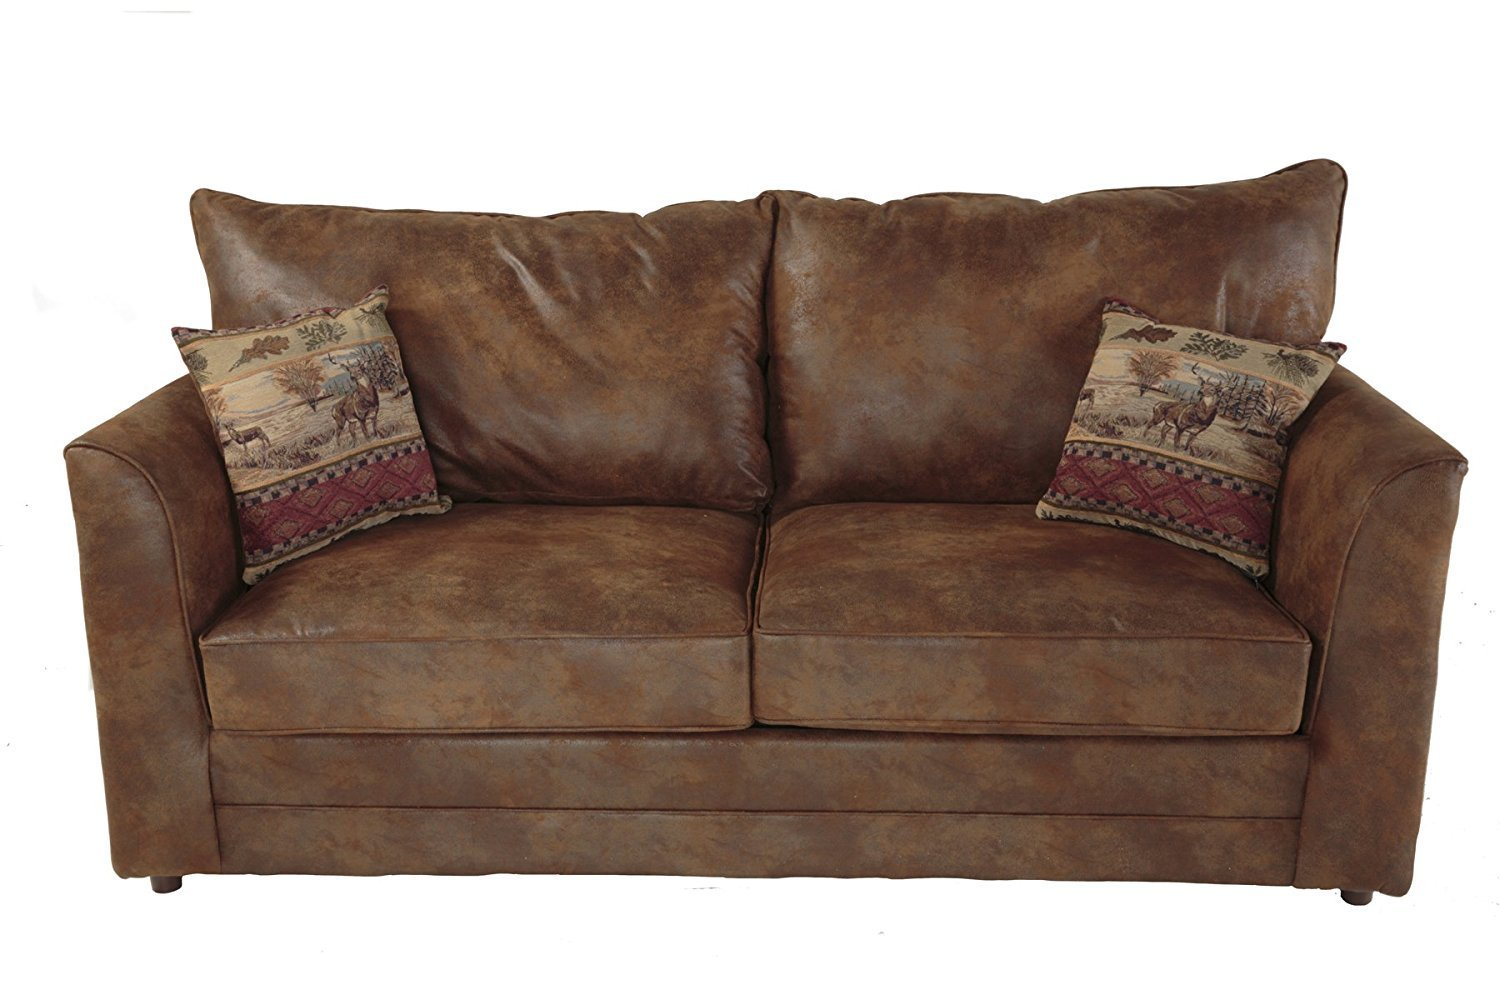 American Furniture Jpg: American Furniture Classics Palomino Sleeper Sofa